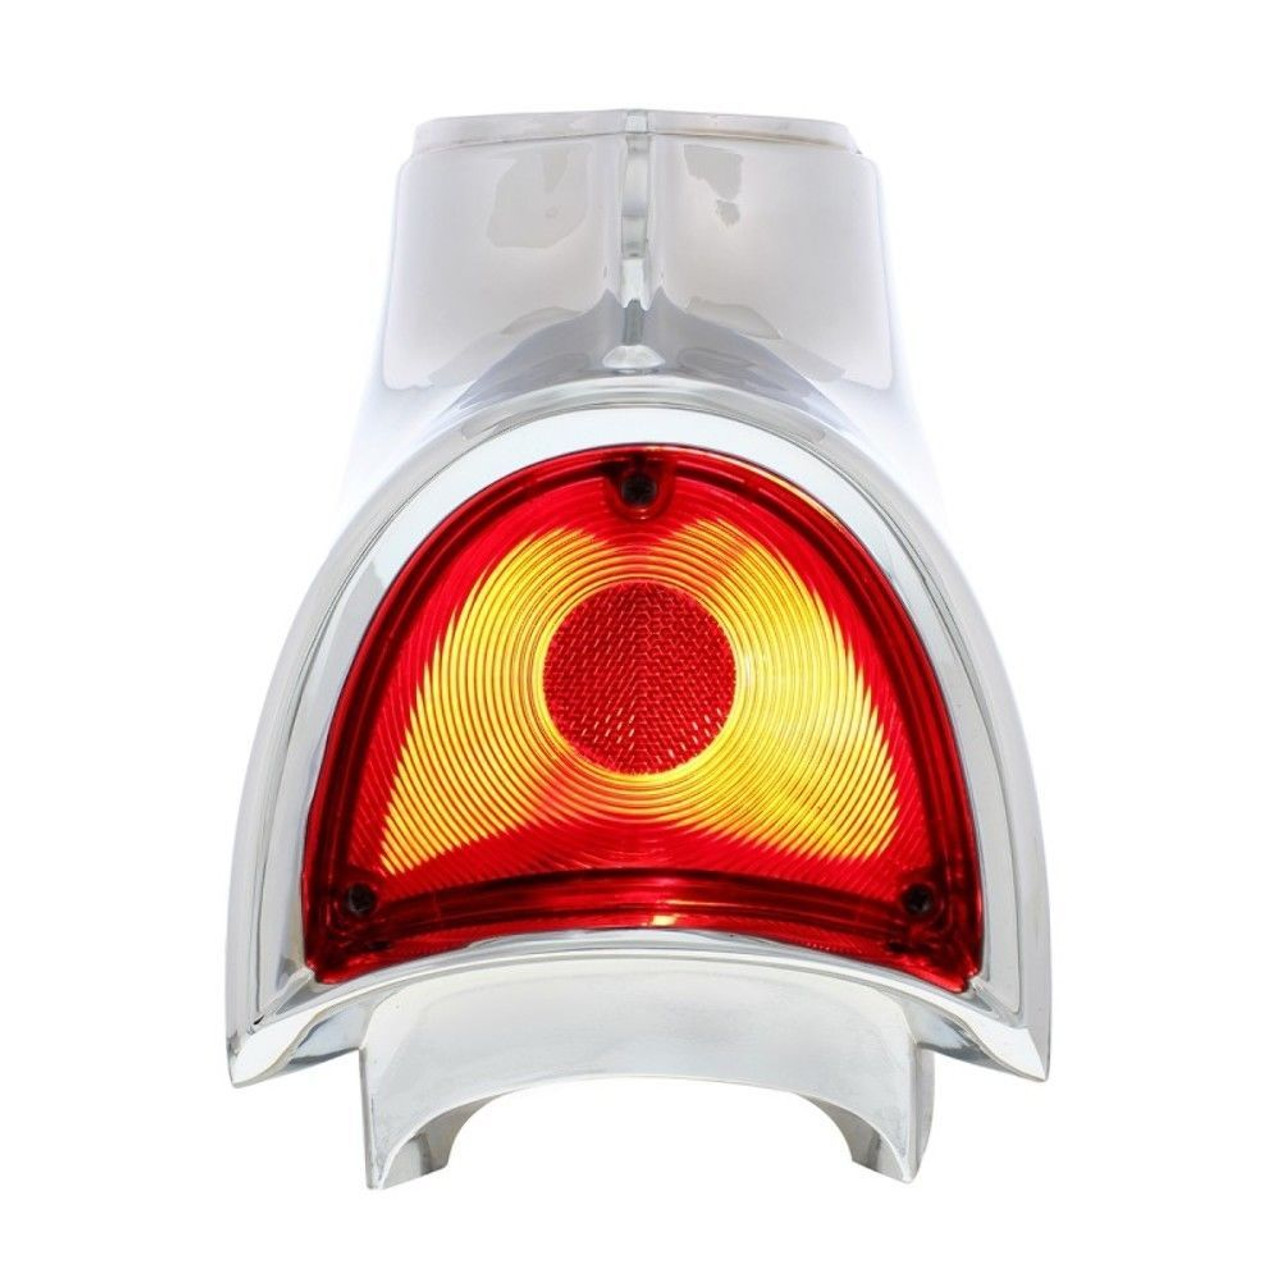 Tail Light Assembly For 1957 Chevy Bel Air/210/150 - Right Hand / Passenger